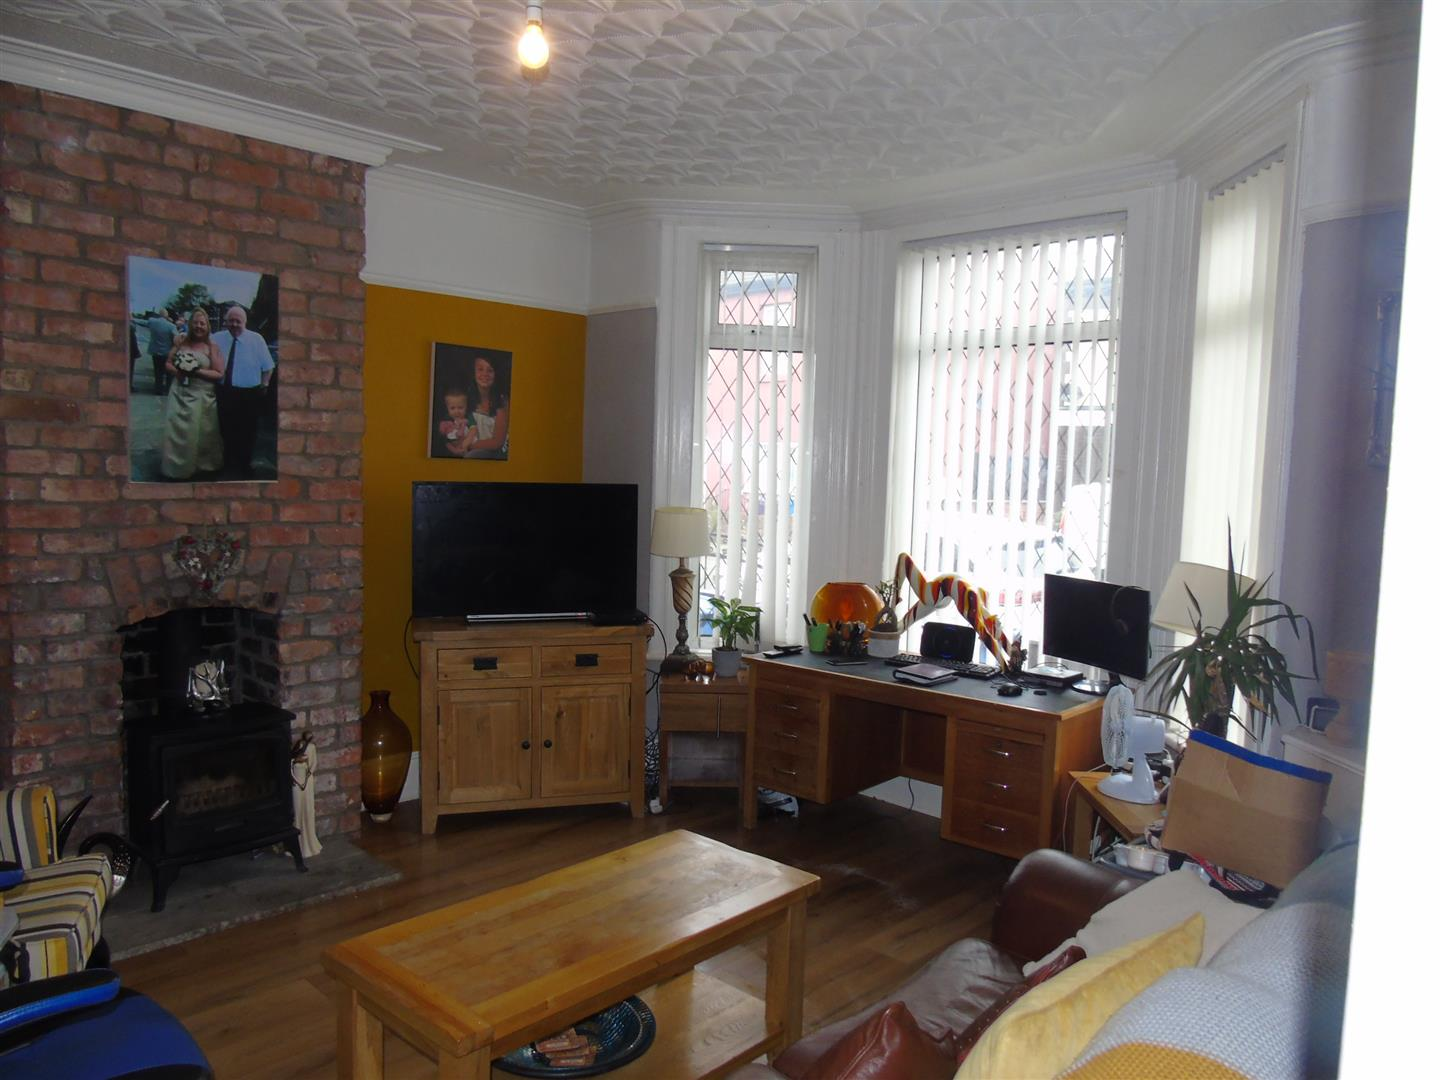 3 Bedrooms, House - Terraced, Eastbourne Road, Aintree, Liverpool